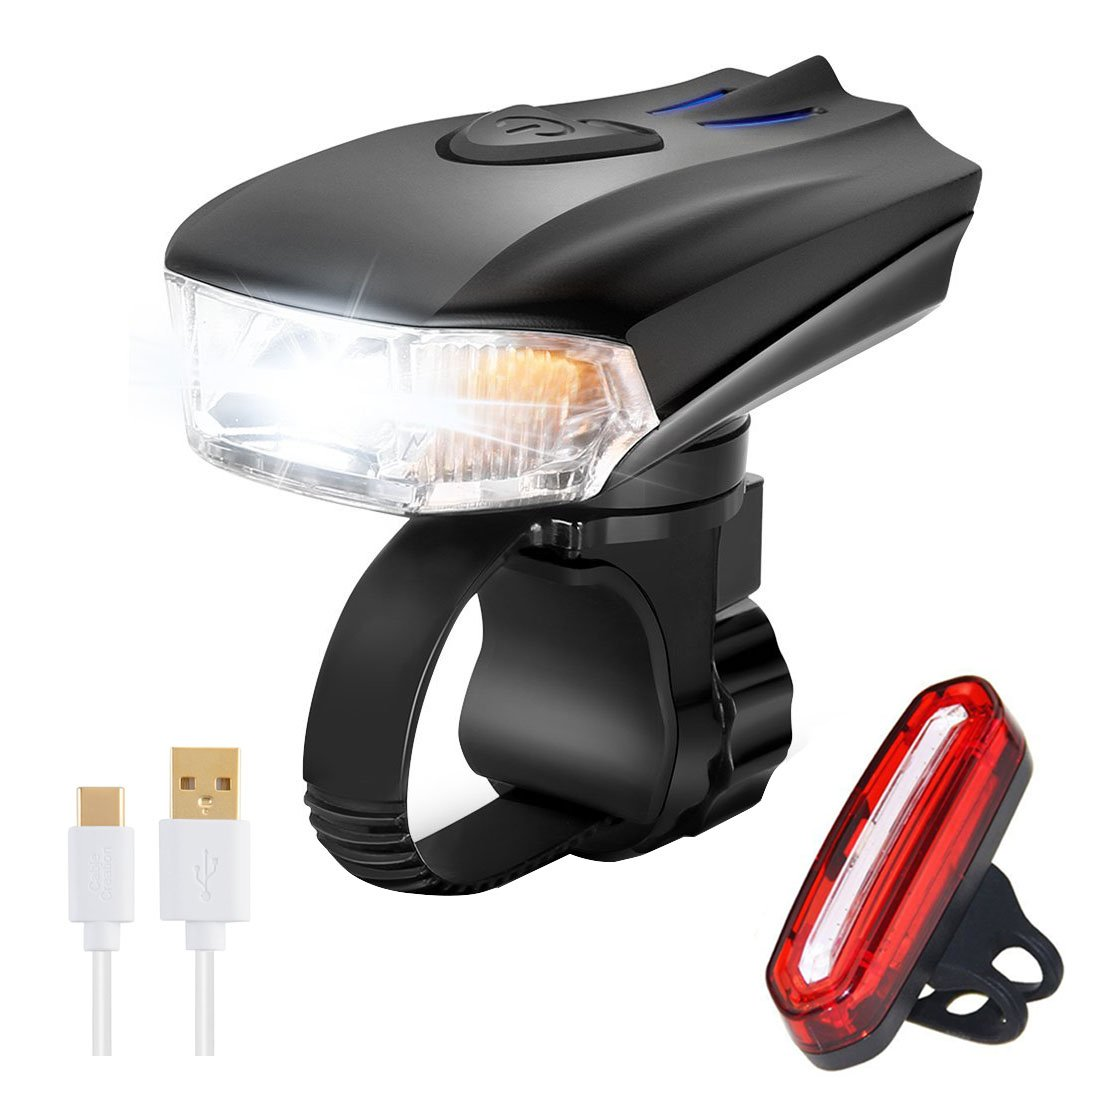 Super Bright Bike Light Set USB Rechargeable Front and Rear LED Bicycle Light Set Waterproof Automatic Light Adjusting Energy-Saving Mode Easy To Install Cycling Safety Commuter Flashlight BEST For Mountain Road, Kids and City Bicycle DUBUT21